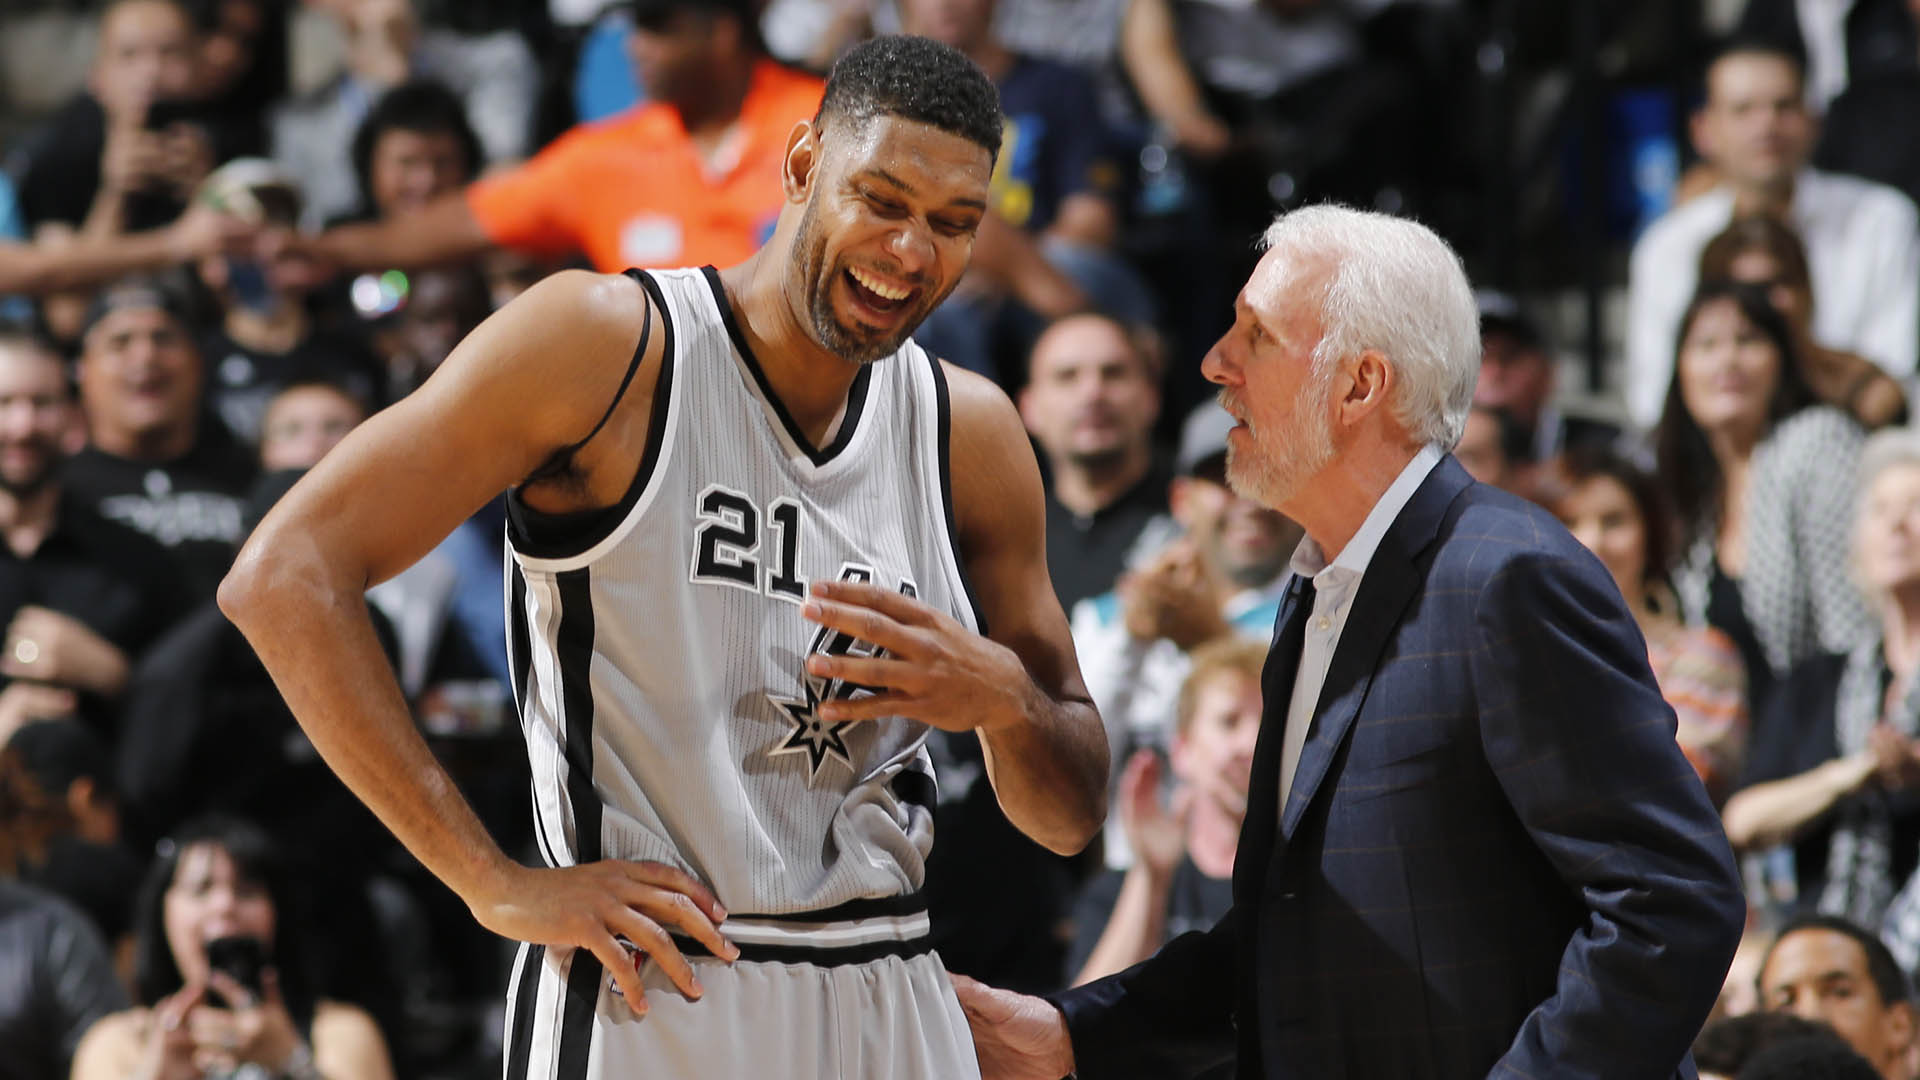 Gregg Popovich misses game to attend Tim Duncan's Hall enshrinement